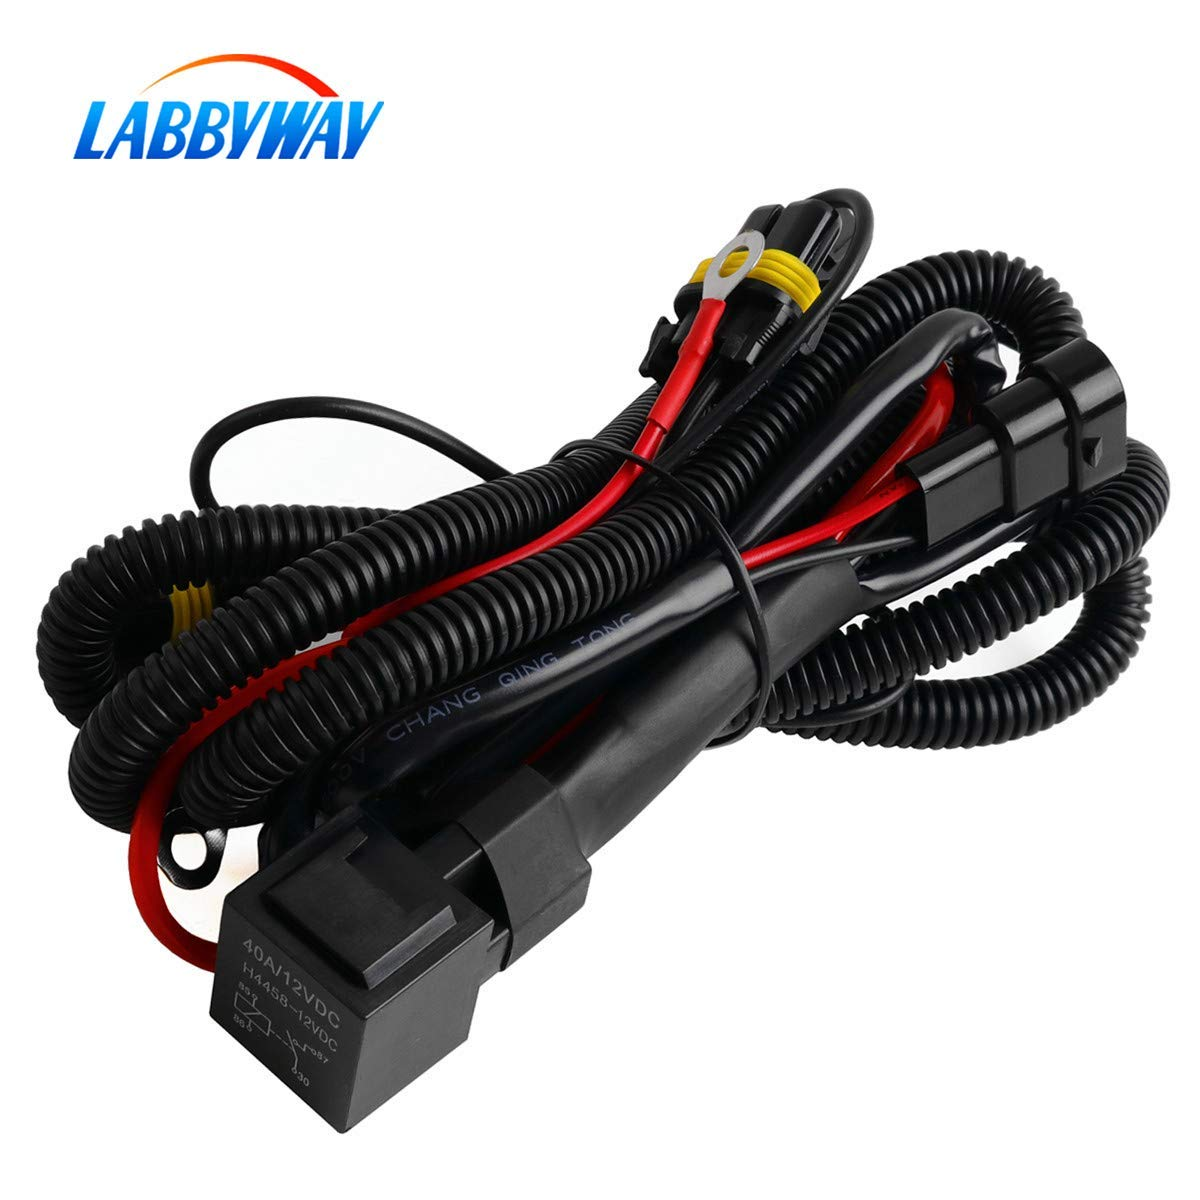 Wiring Harness Conversion Labbyway Universal Hid Kit Hydrogen Lamp Single Beam Relay Harnesssuitable For H1 H3